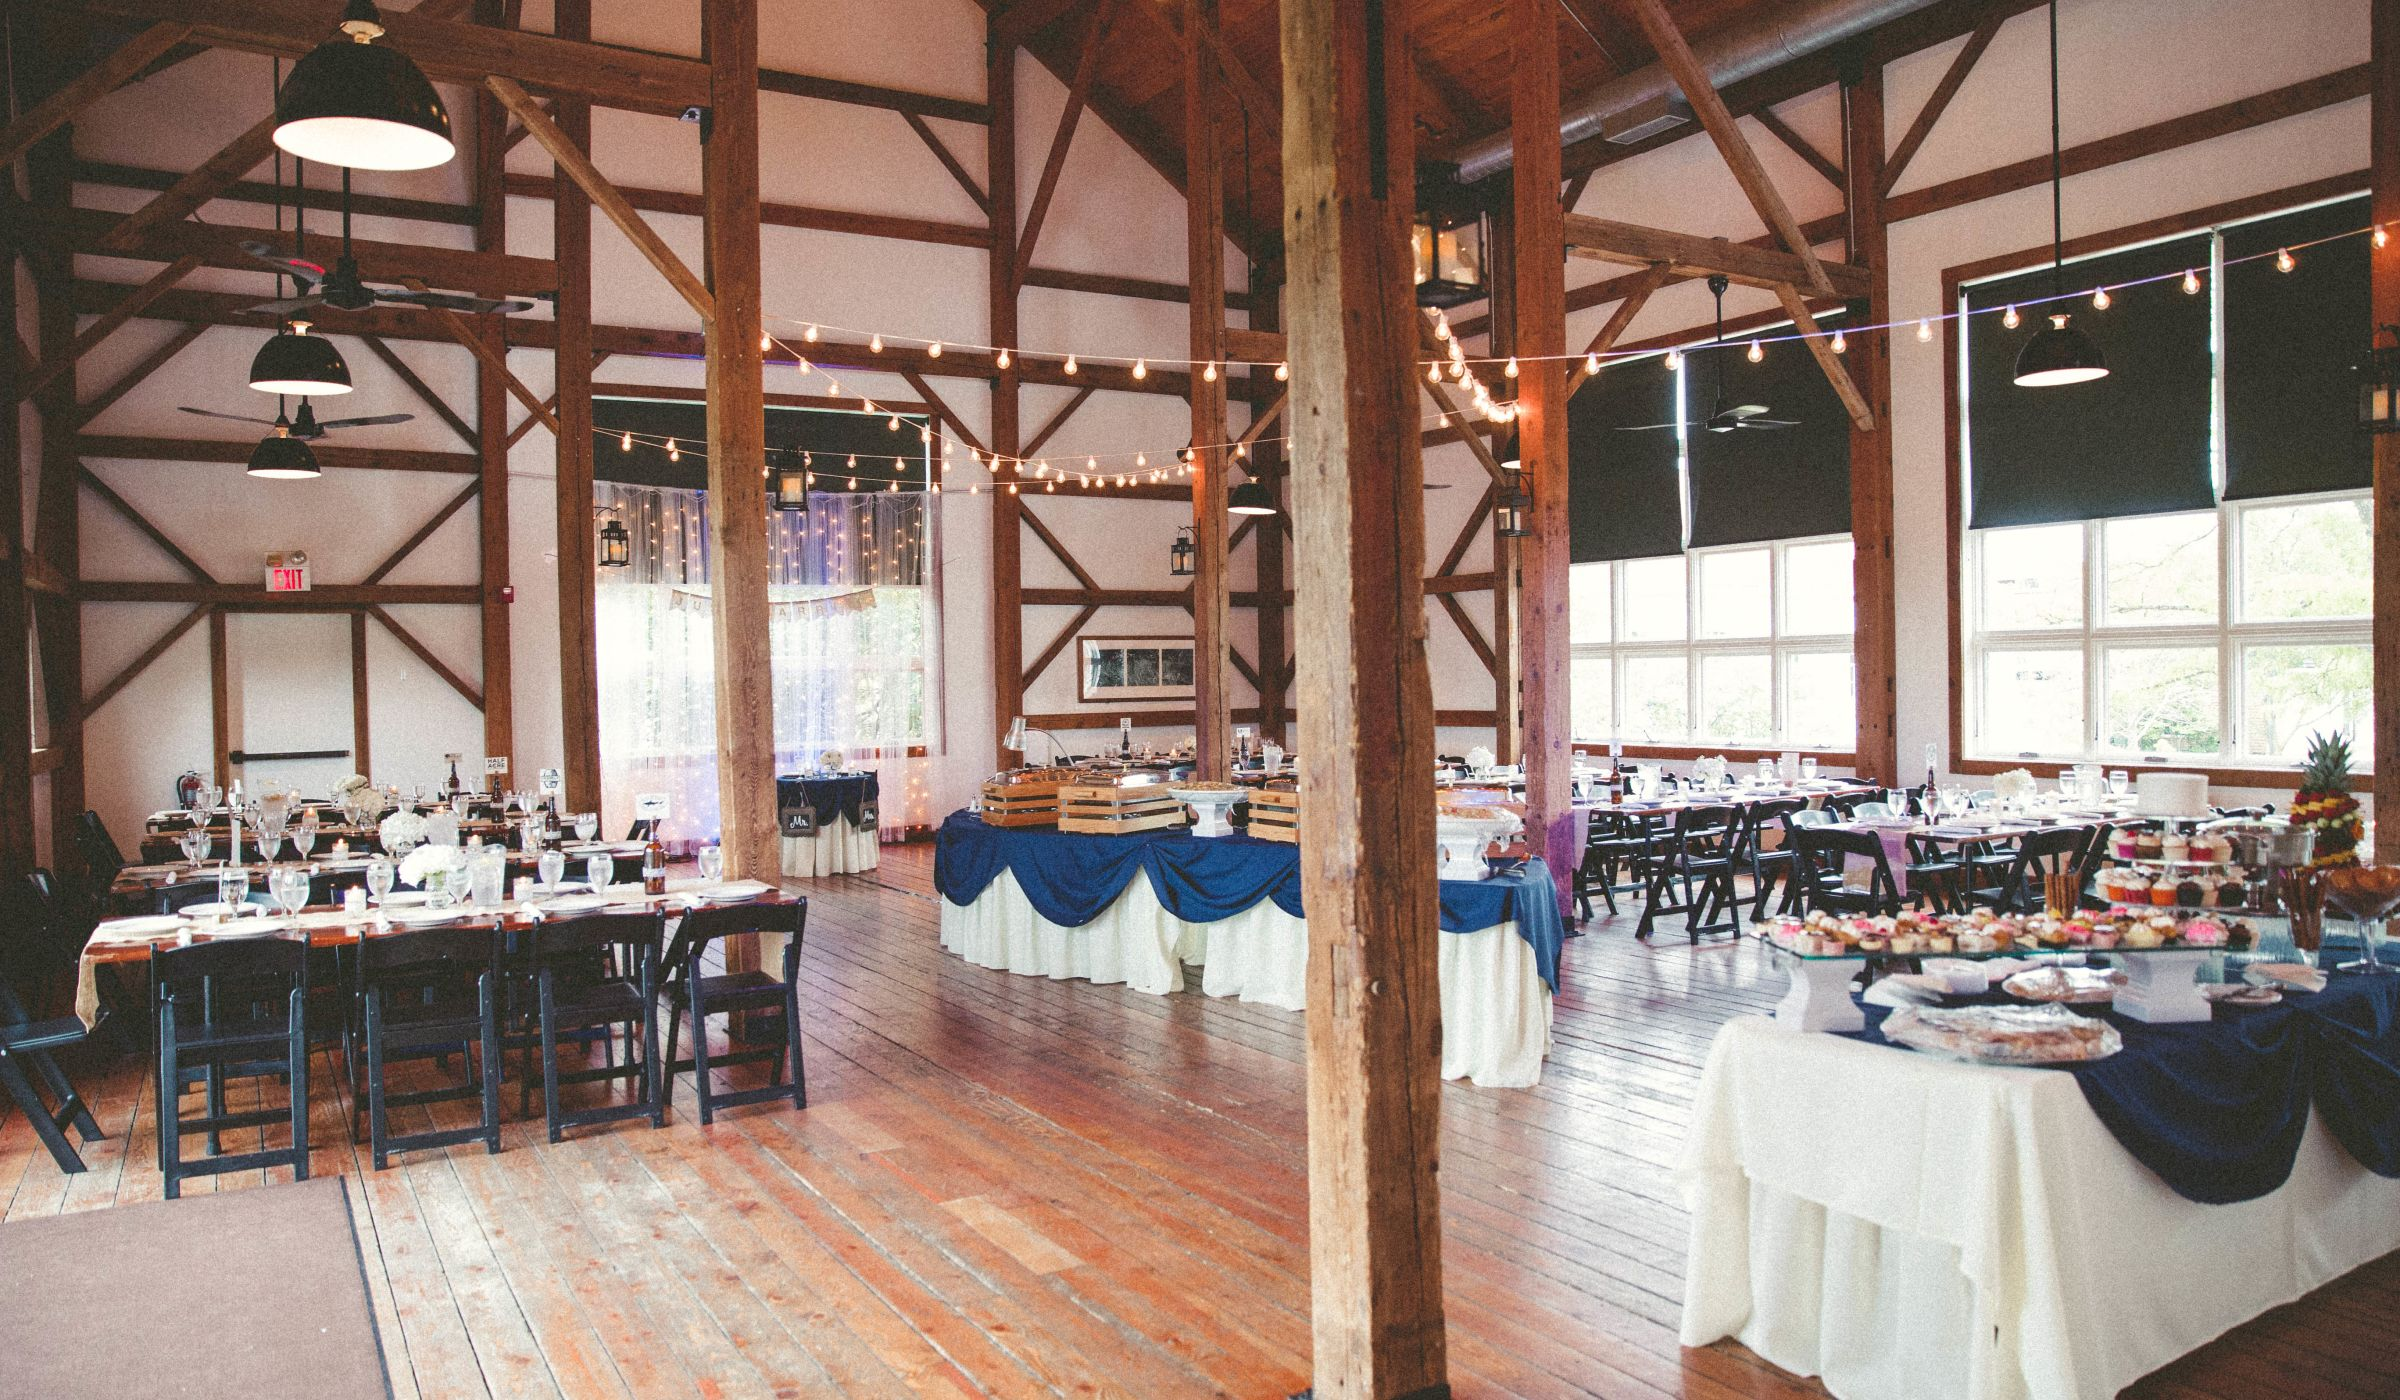 8 Barn Wedding Venues Near Chicago For Rustic Couples